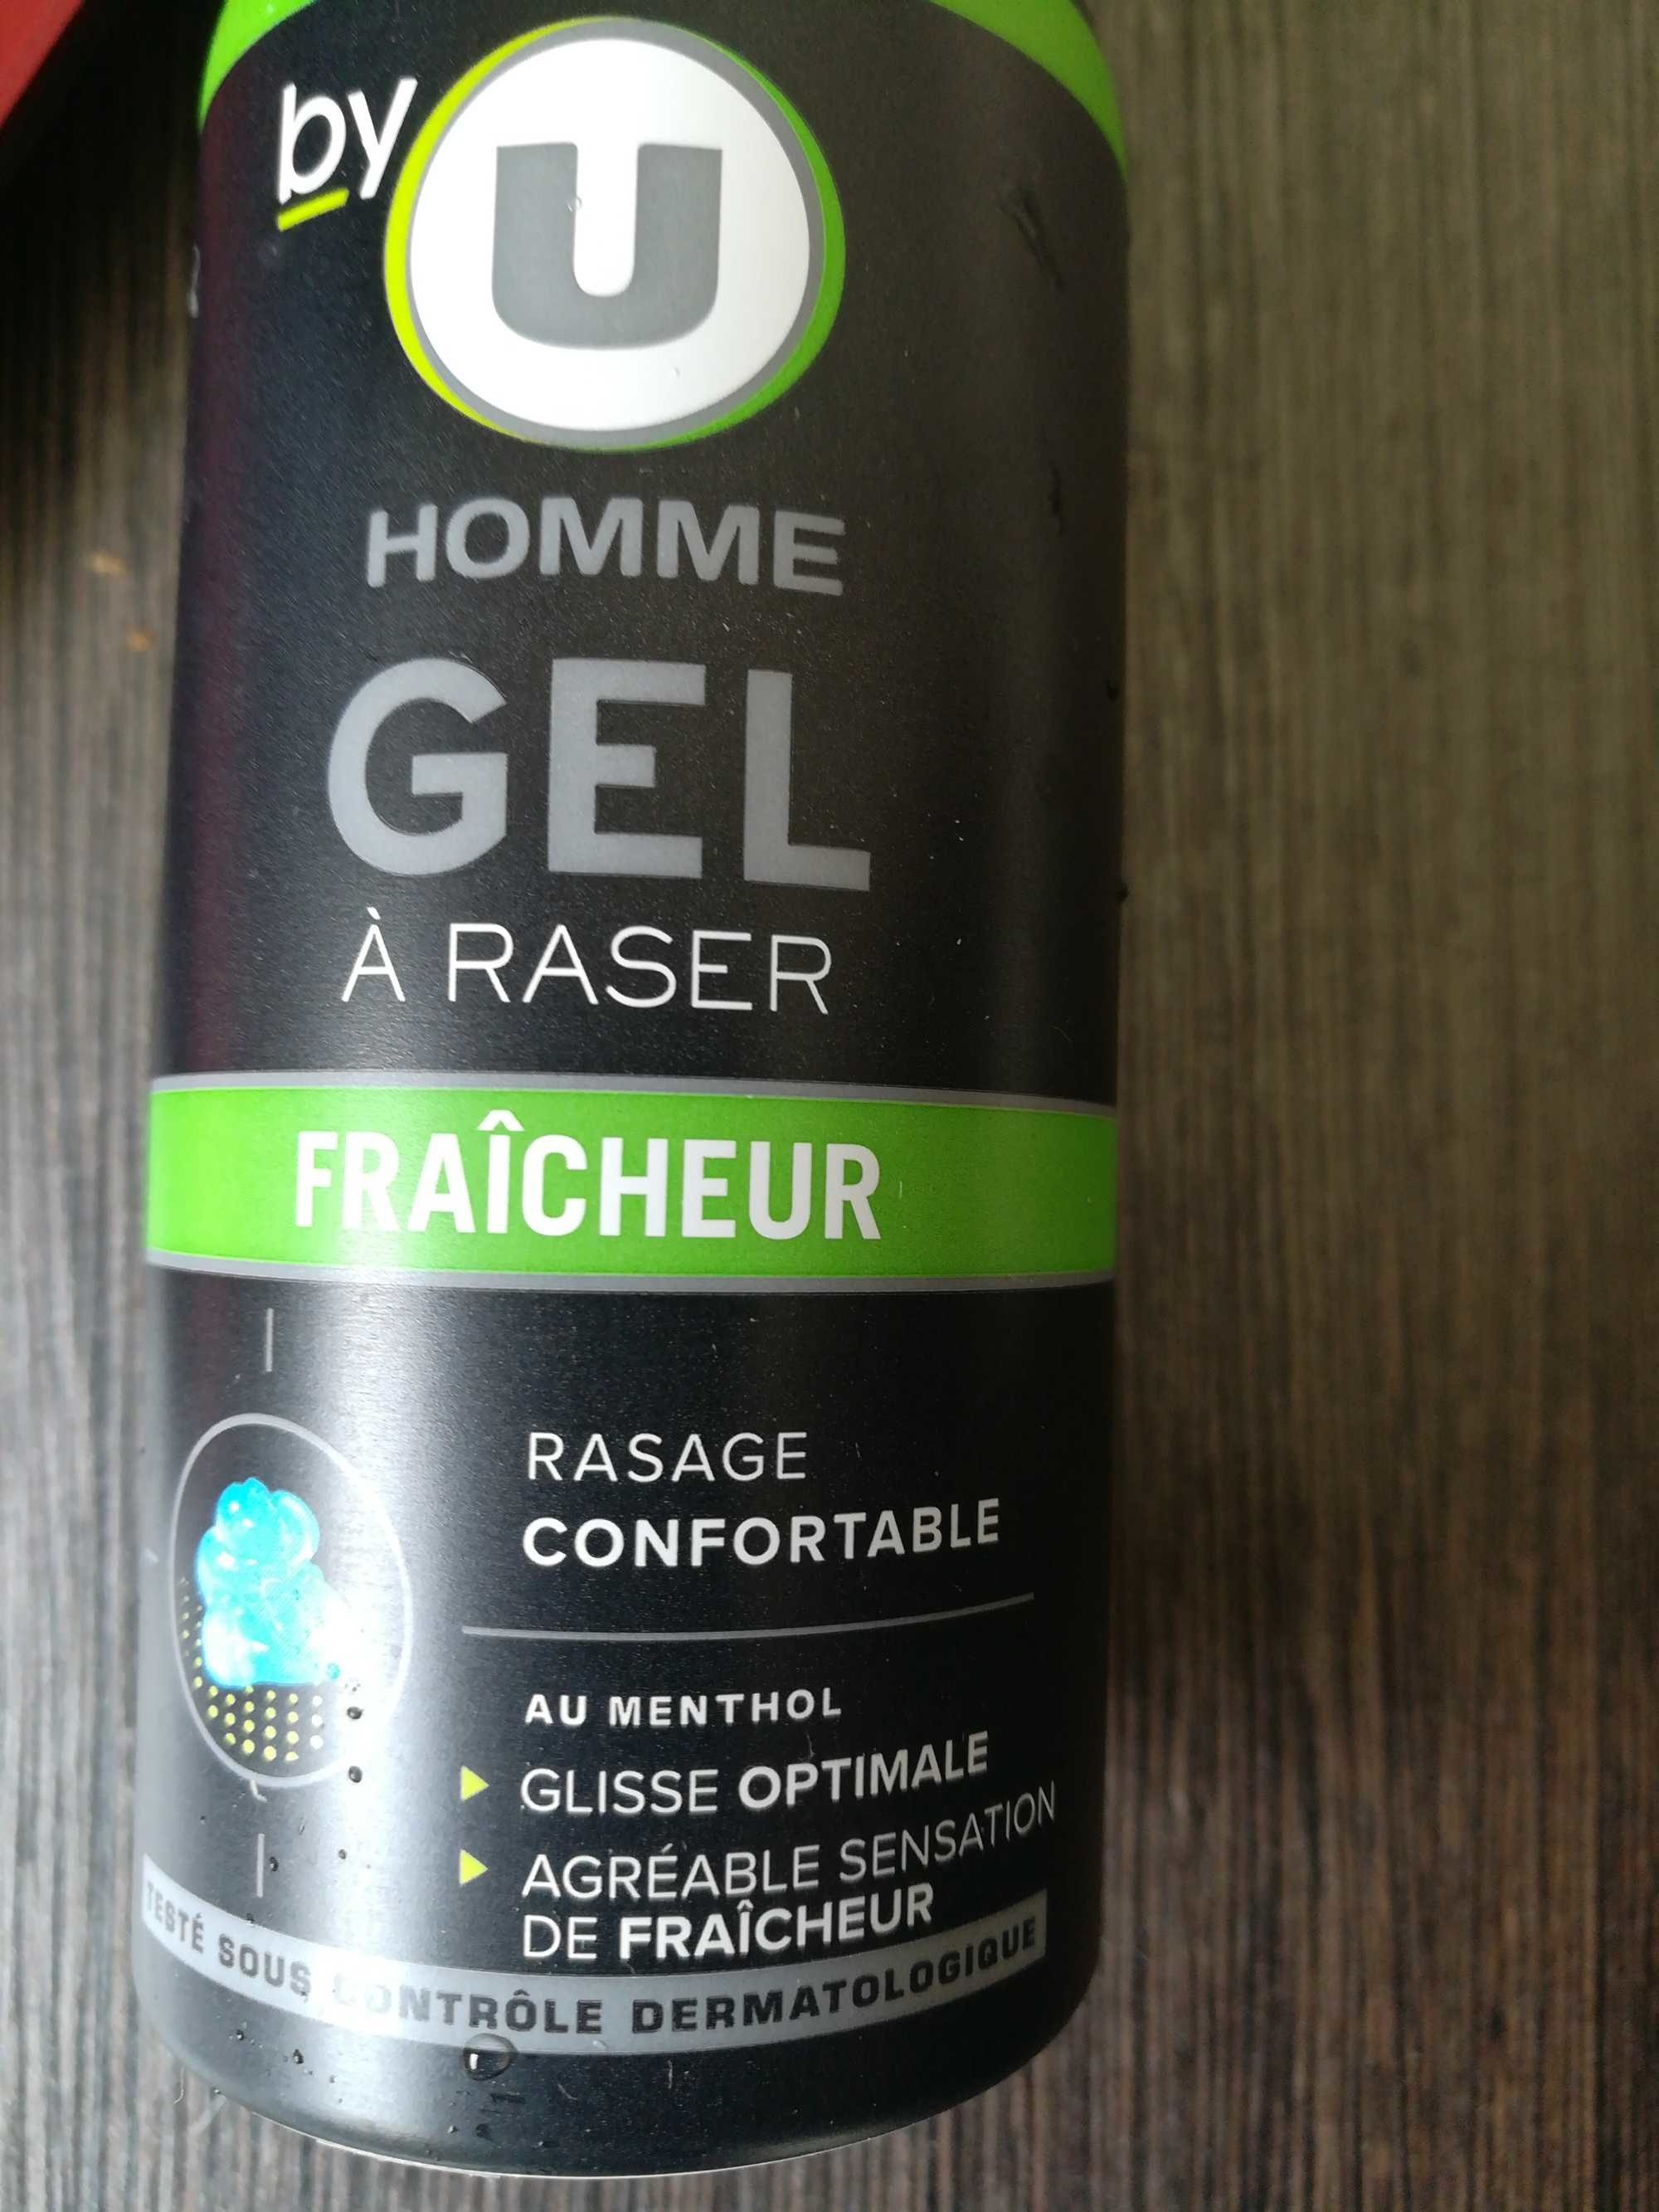 Gel a raser - Product - fr